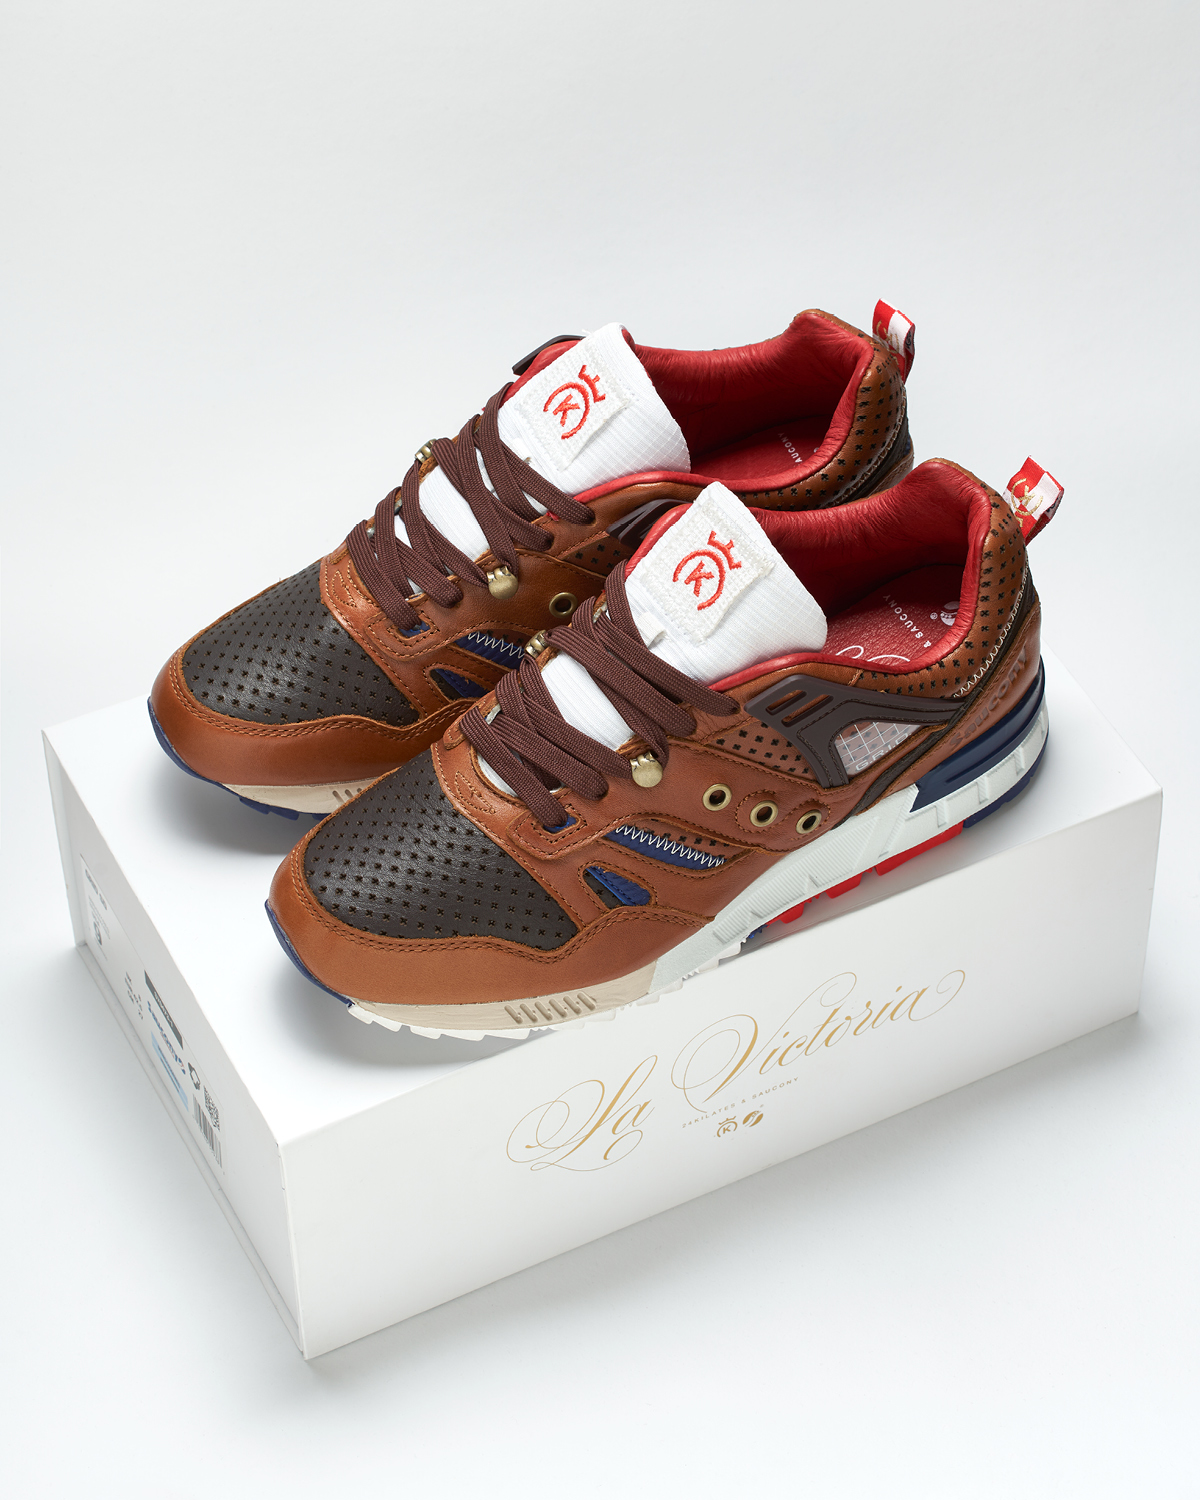 24KILATES-SAUCONY-LAVICTORIA-PRODUCTPICTURES2-1.jpg